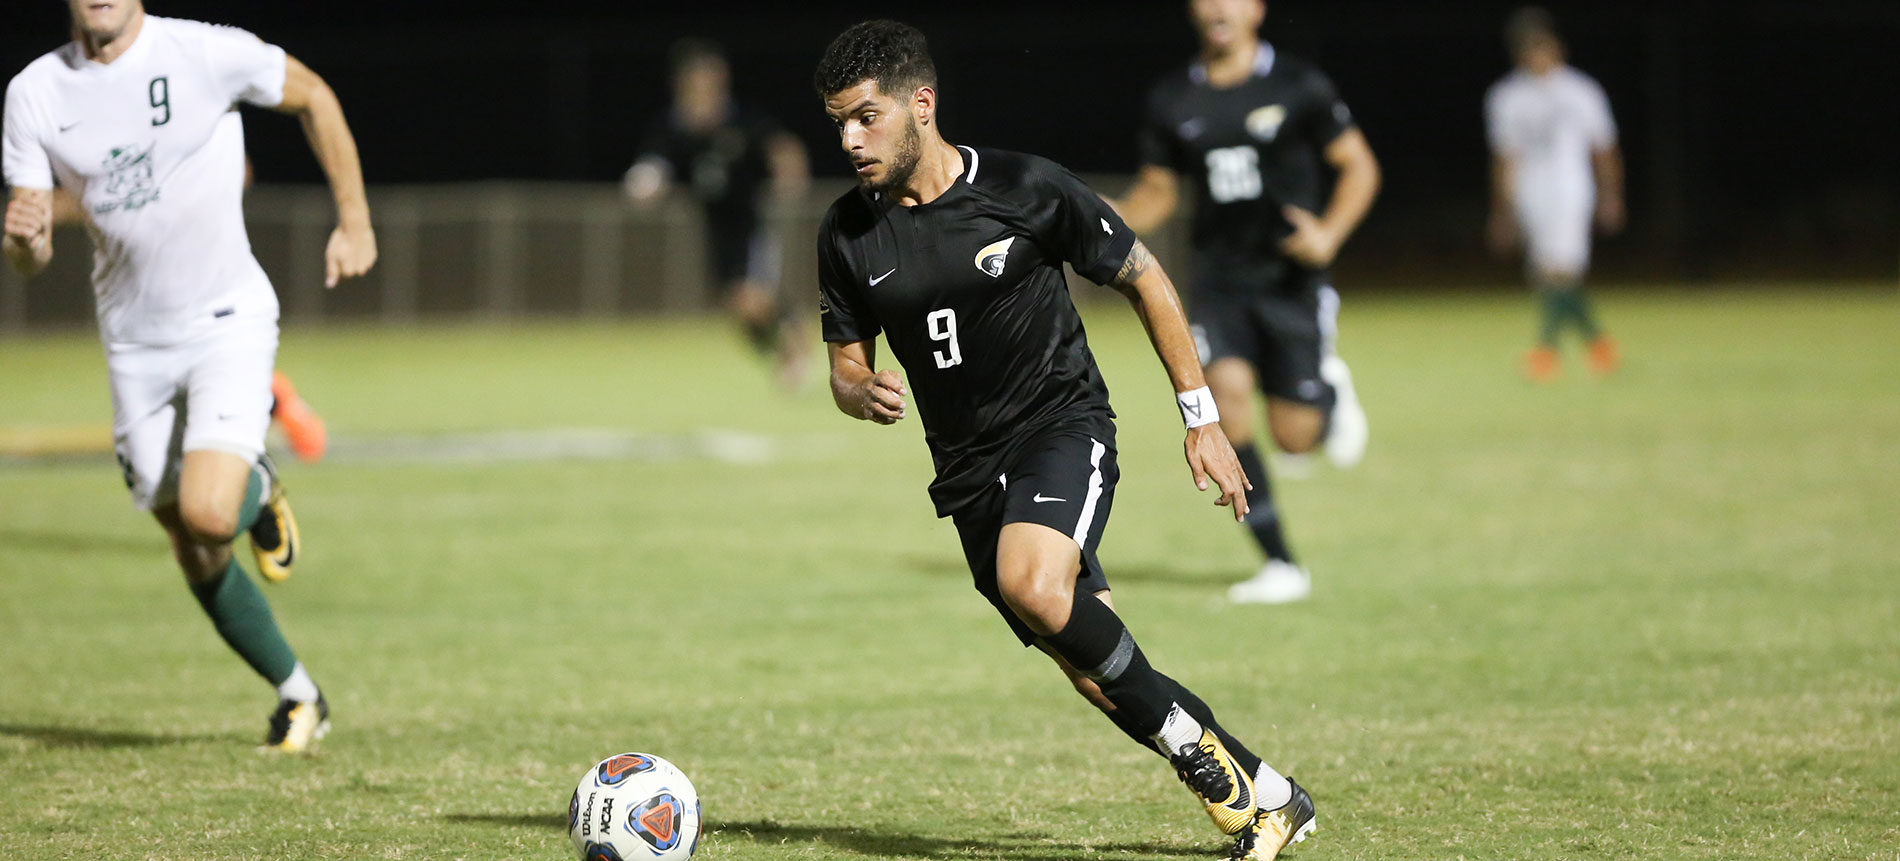 Late Goal Lifts North Georgia over Anderson; 2-1